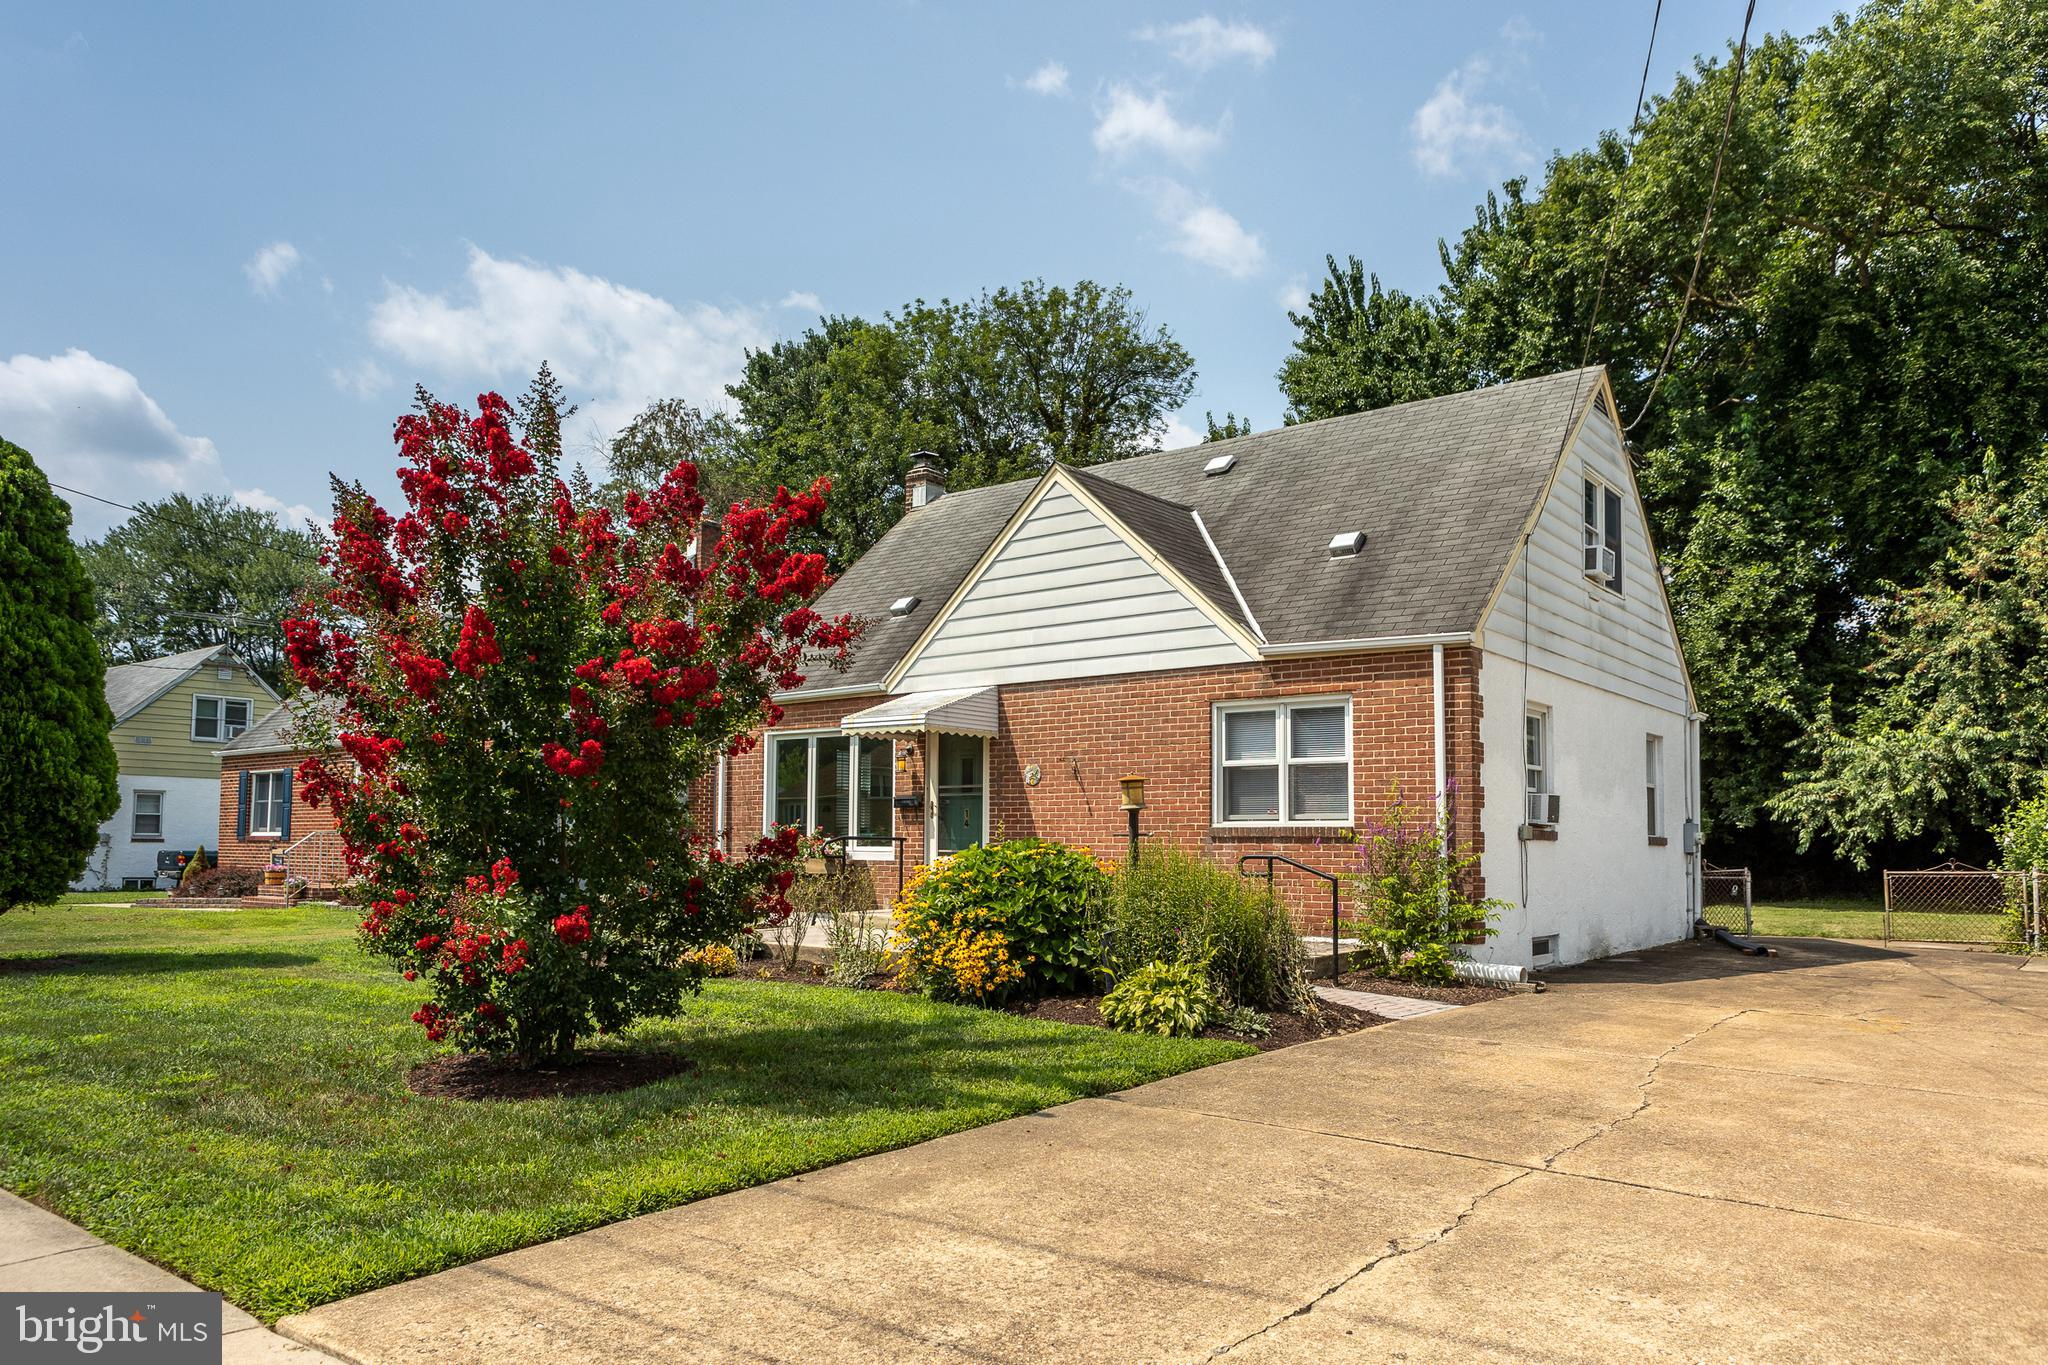 Welcome to this charming 4 bedroom 2 bath Cape Cod home! This home has been meticulously cared for a